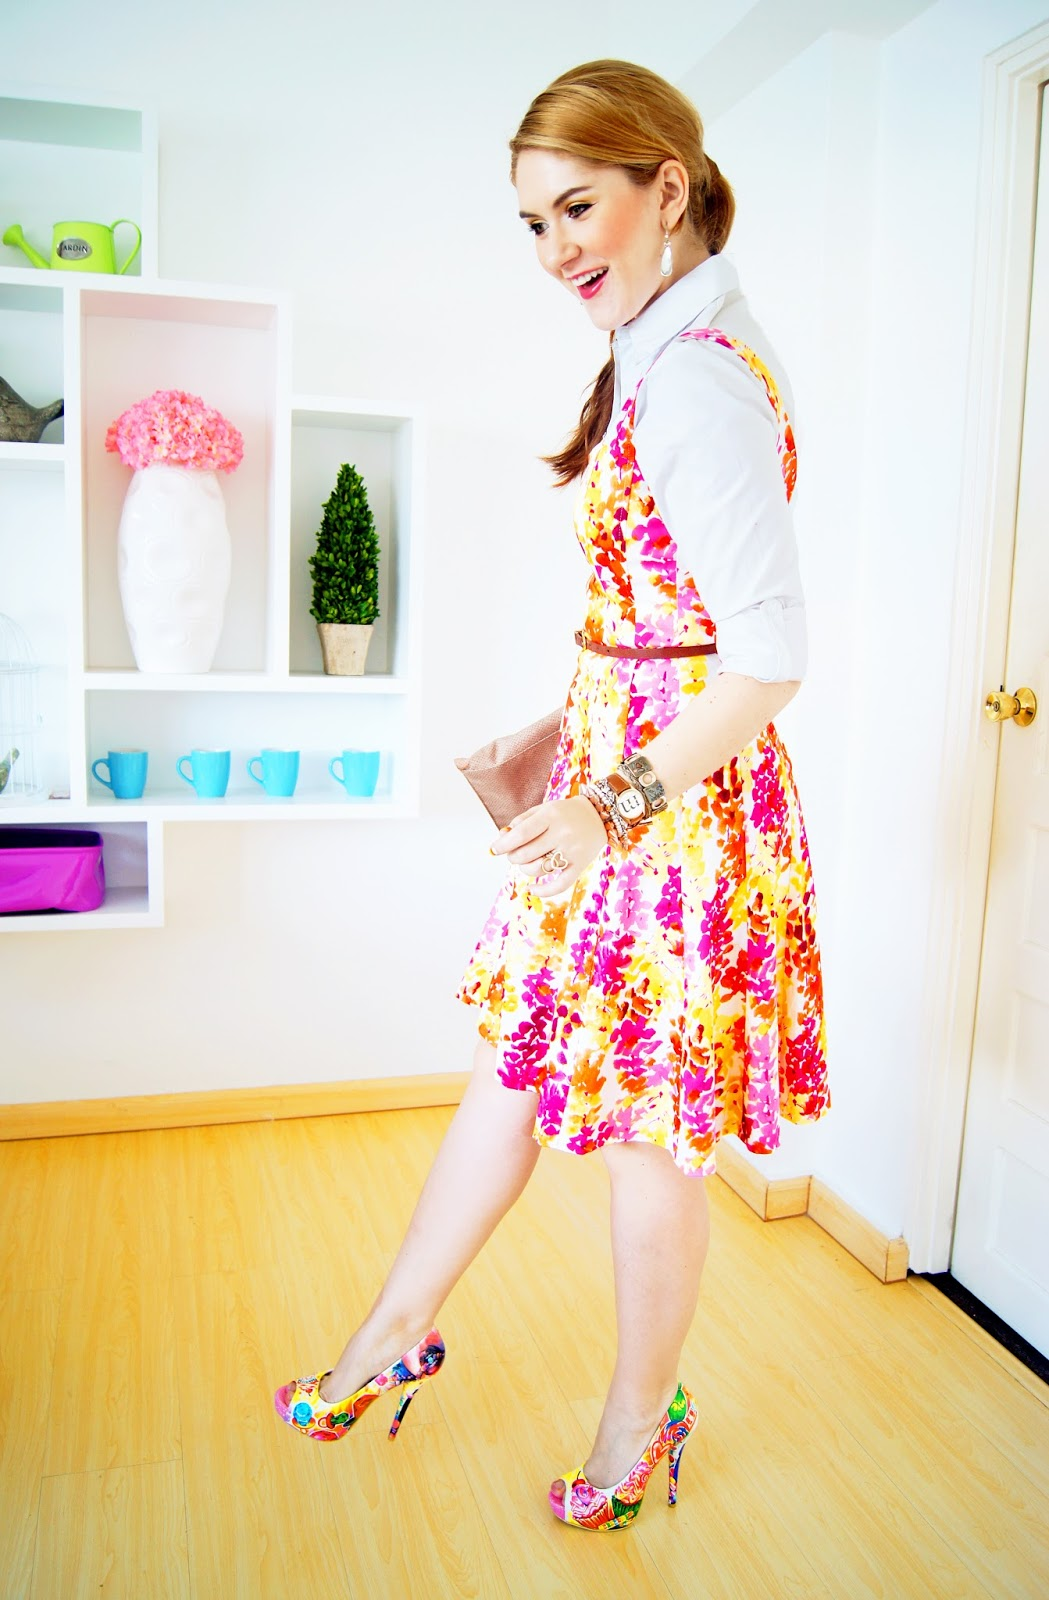 Colorful Floral Outfit for Spring